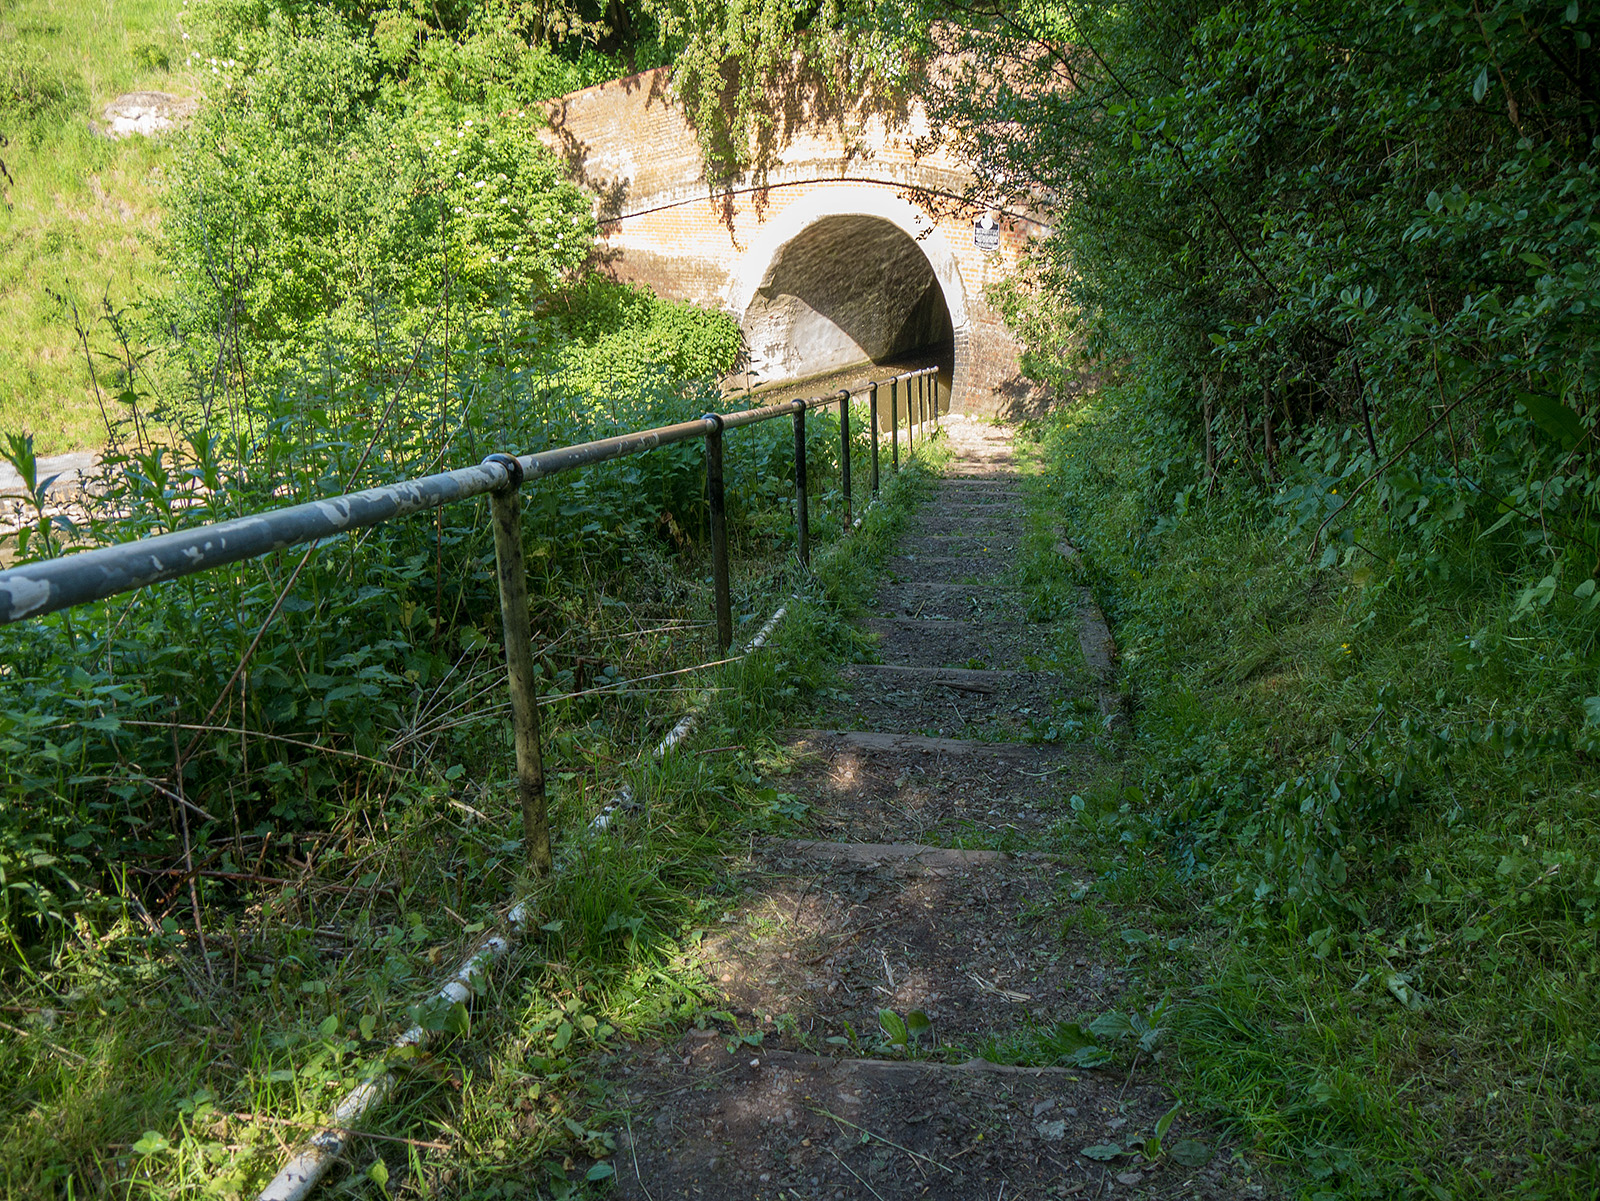 Final descent to the western side of the Braunston tunnel